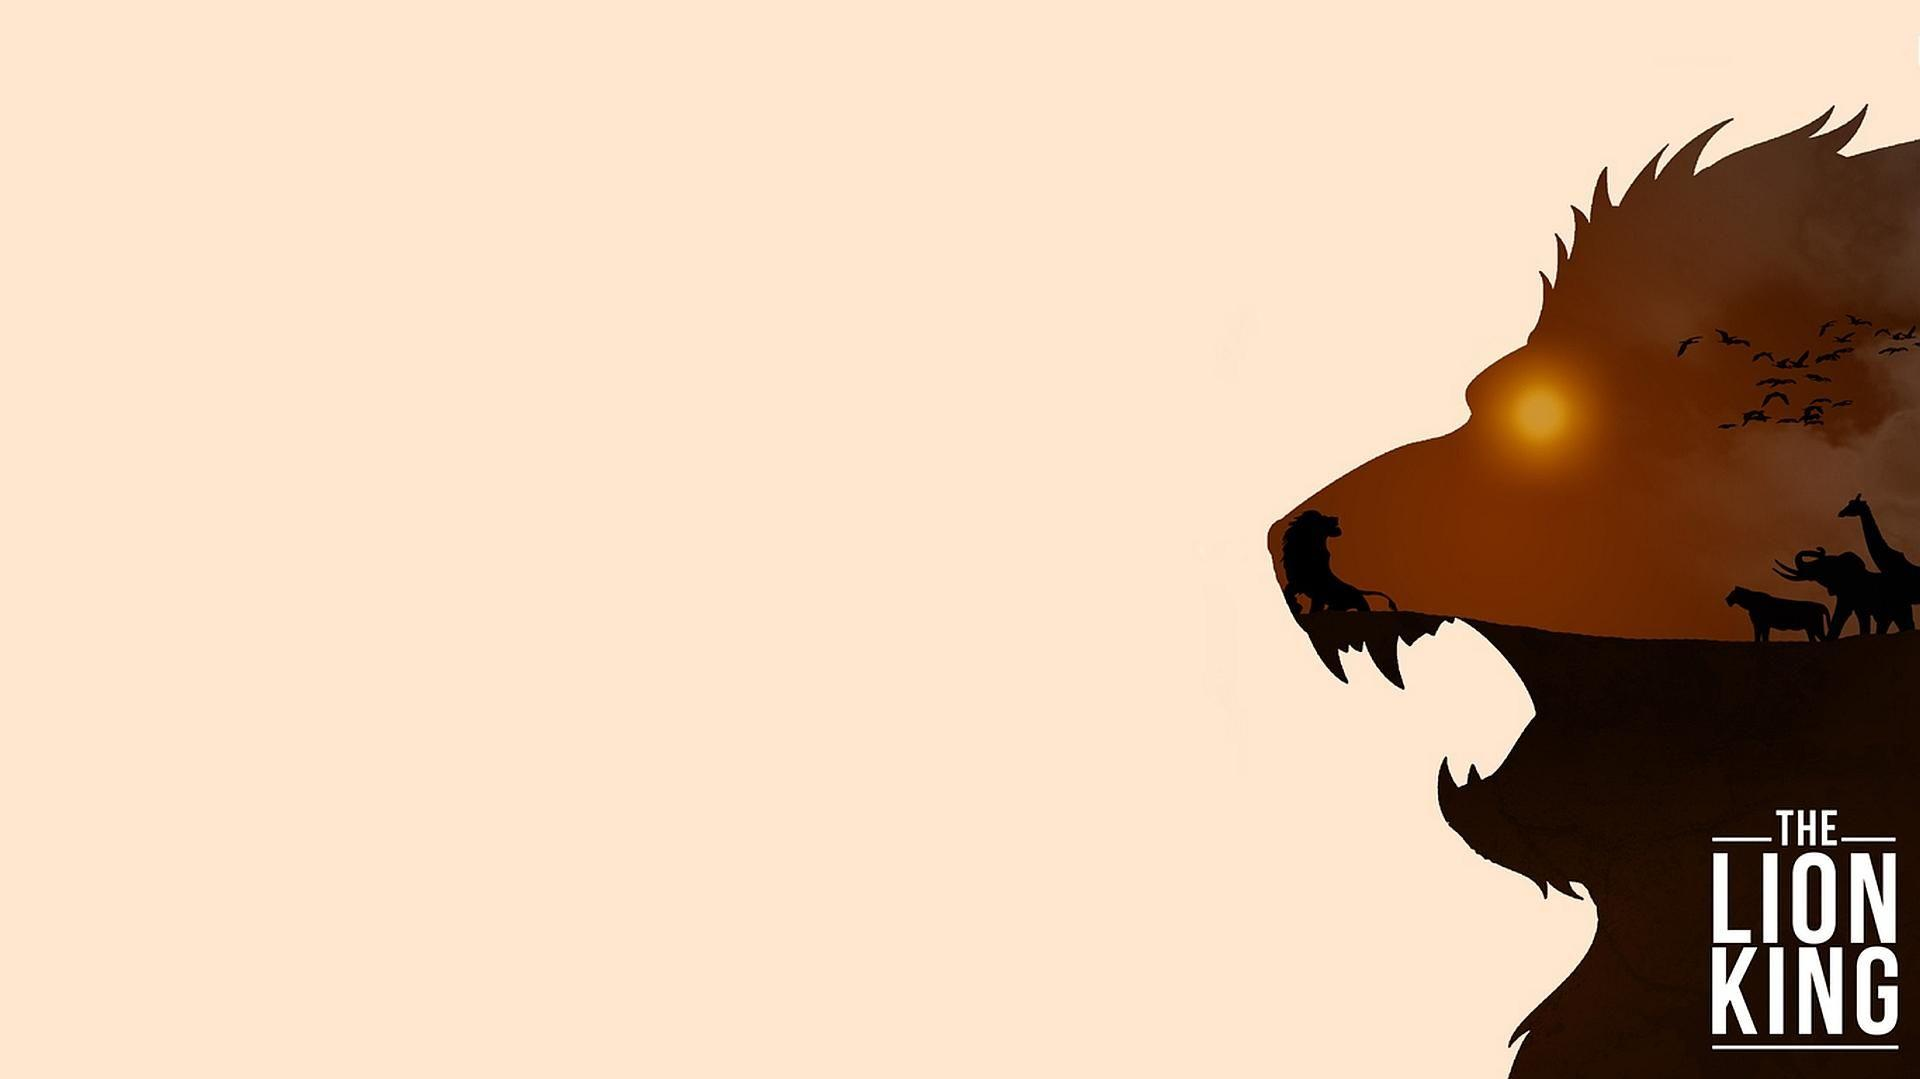 Hd Lion King Wallpaper: The Lion King Wallpapers